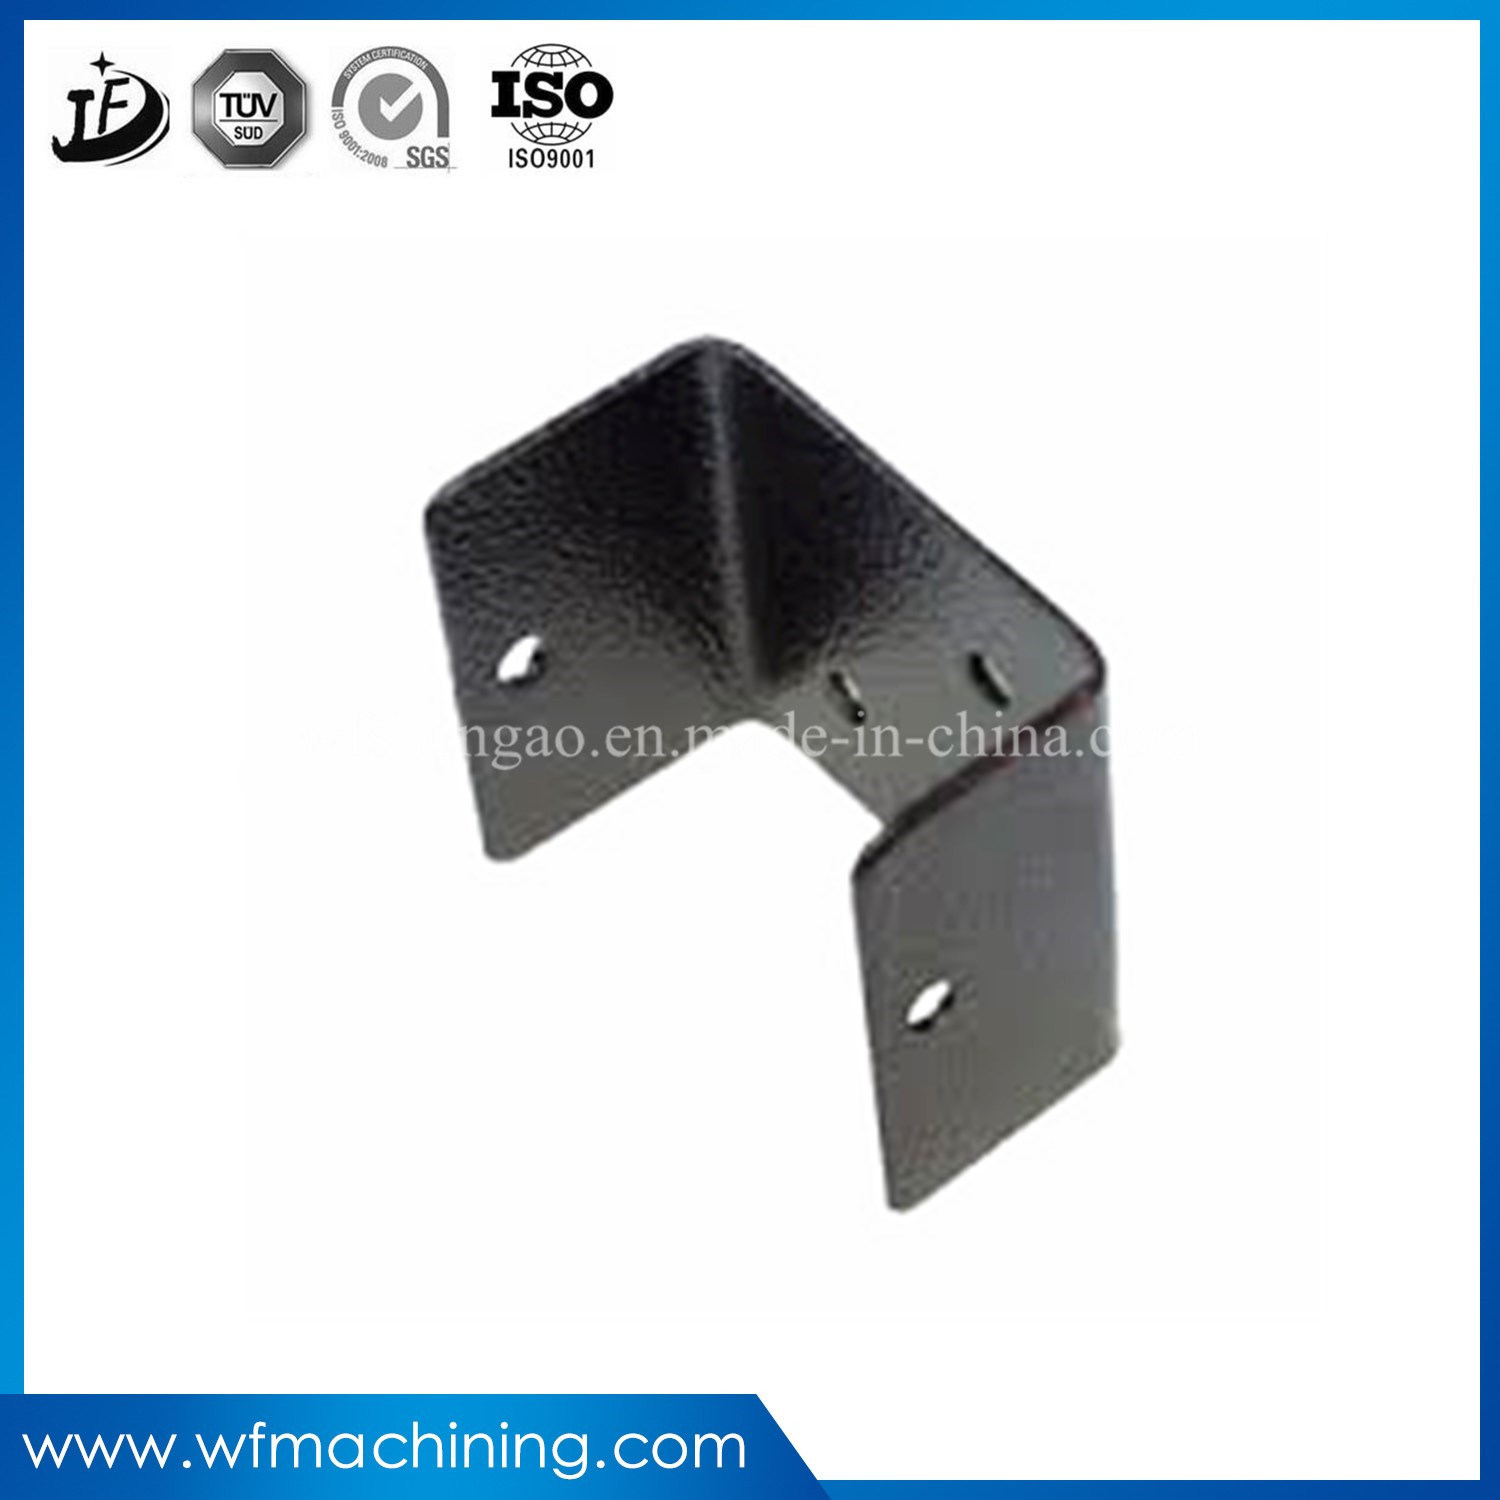 OEM Brass/Iron/Copper/Stainless Steel/Aluminum Sheet Metal Stamping Parts